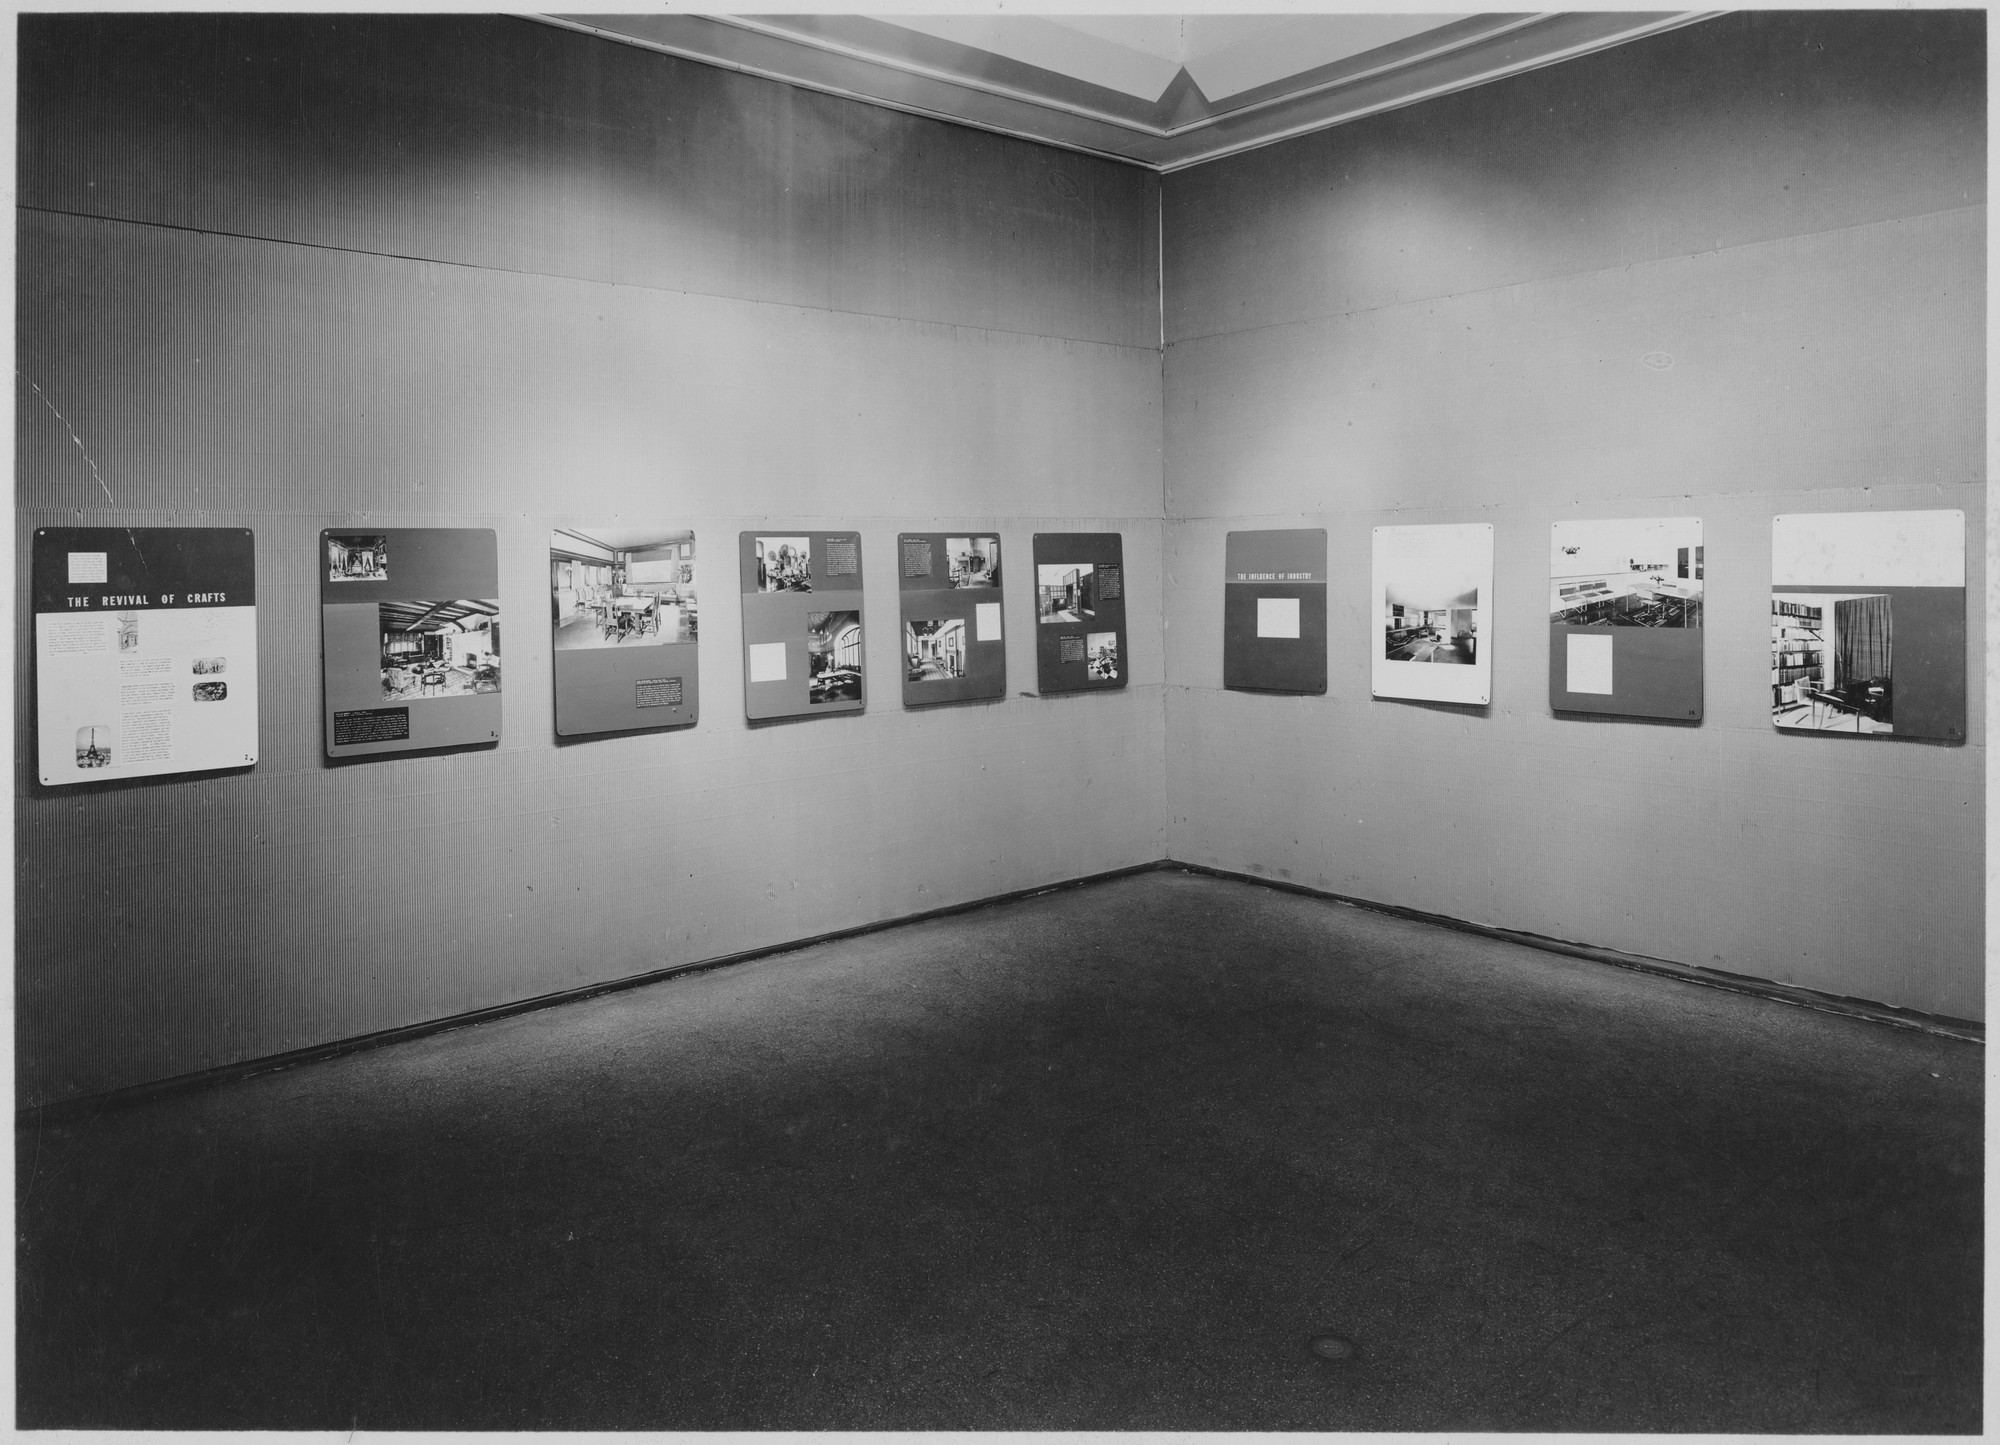 "Installation view of the exhibition, ""Modern Rooms of the Last Fifty Years"" November 26, 1946–January 26, 1947. Photographic Archive. The Museum of Modern Art Archives, New York. IN337.1. Photograph by Soichi Sunami."